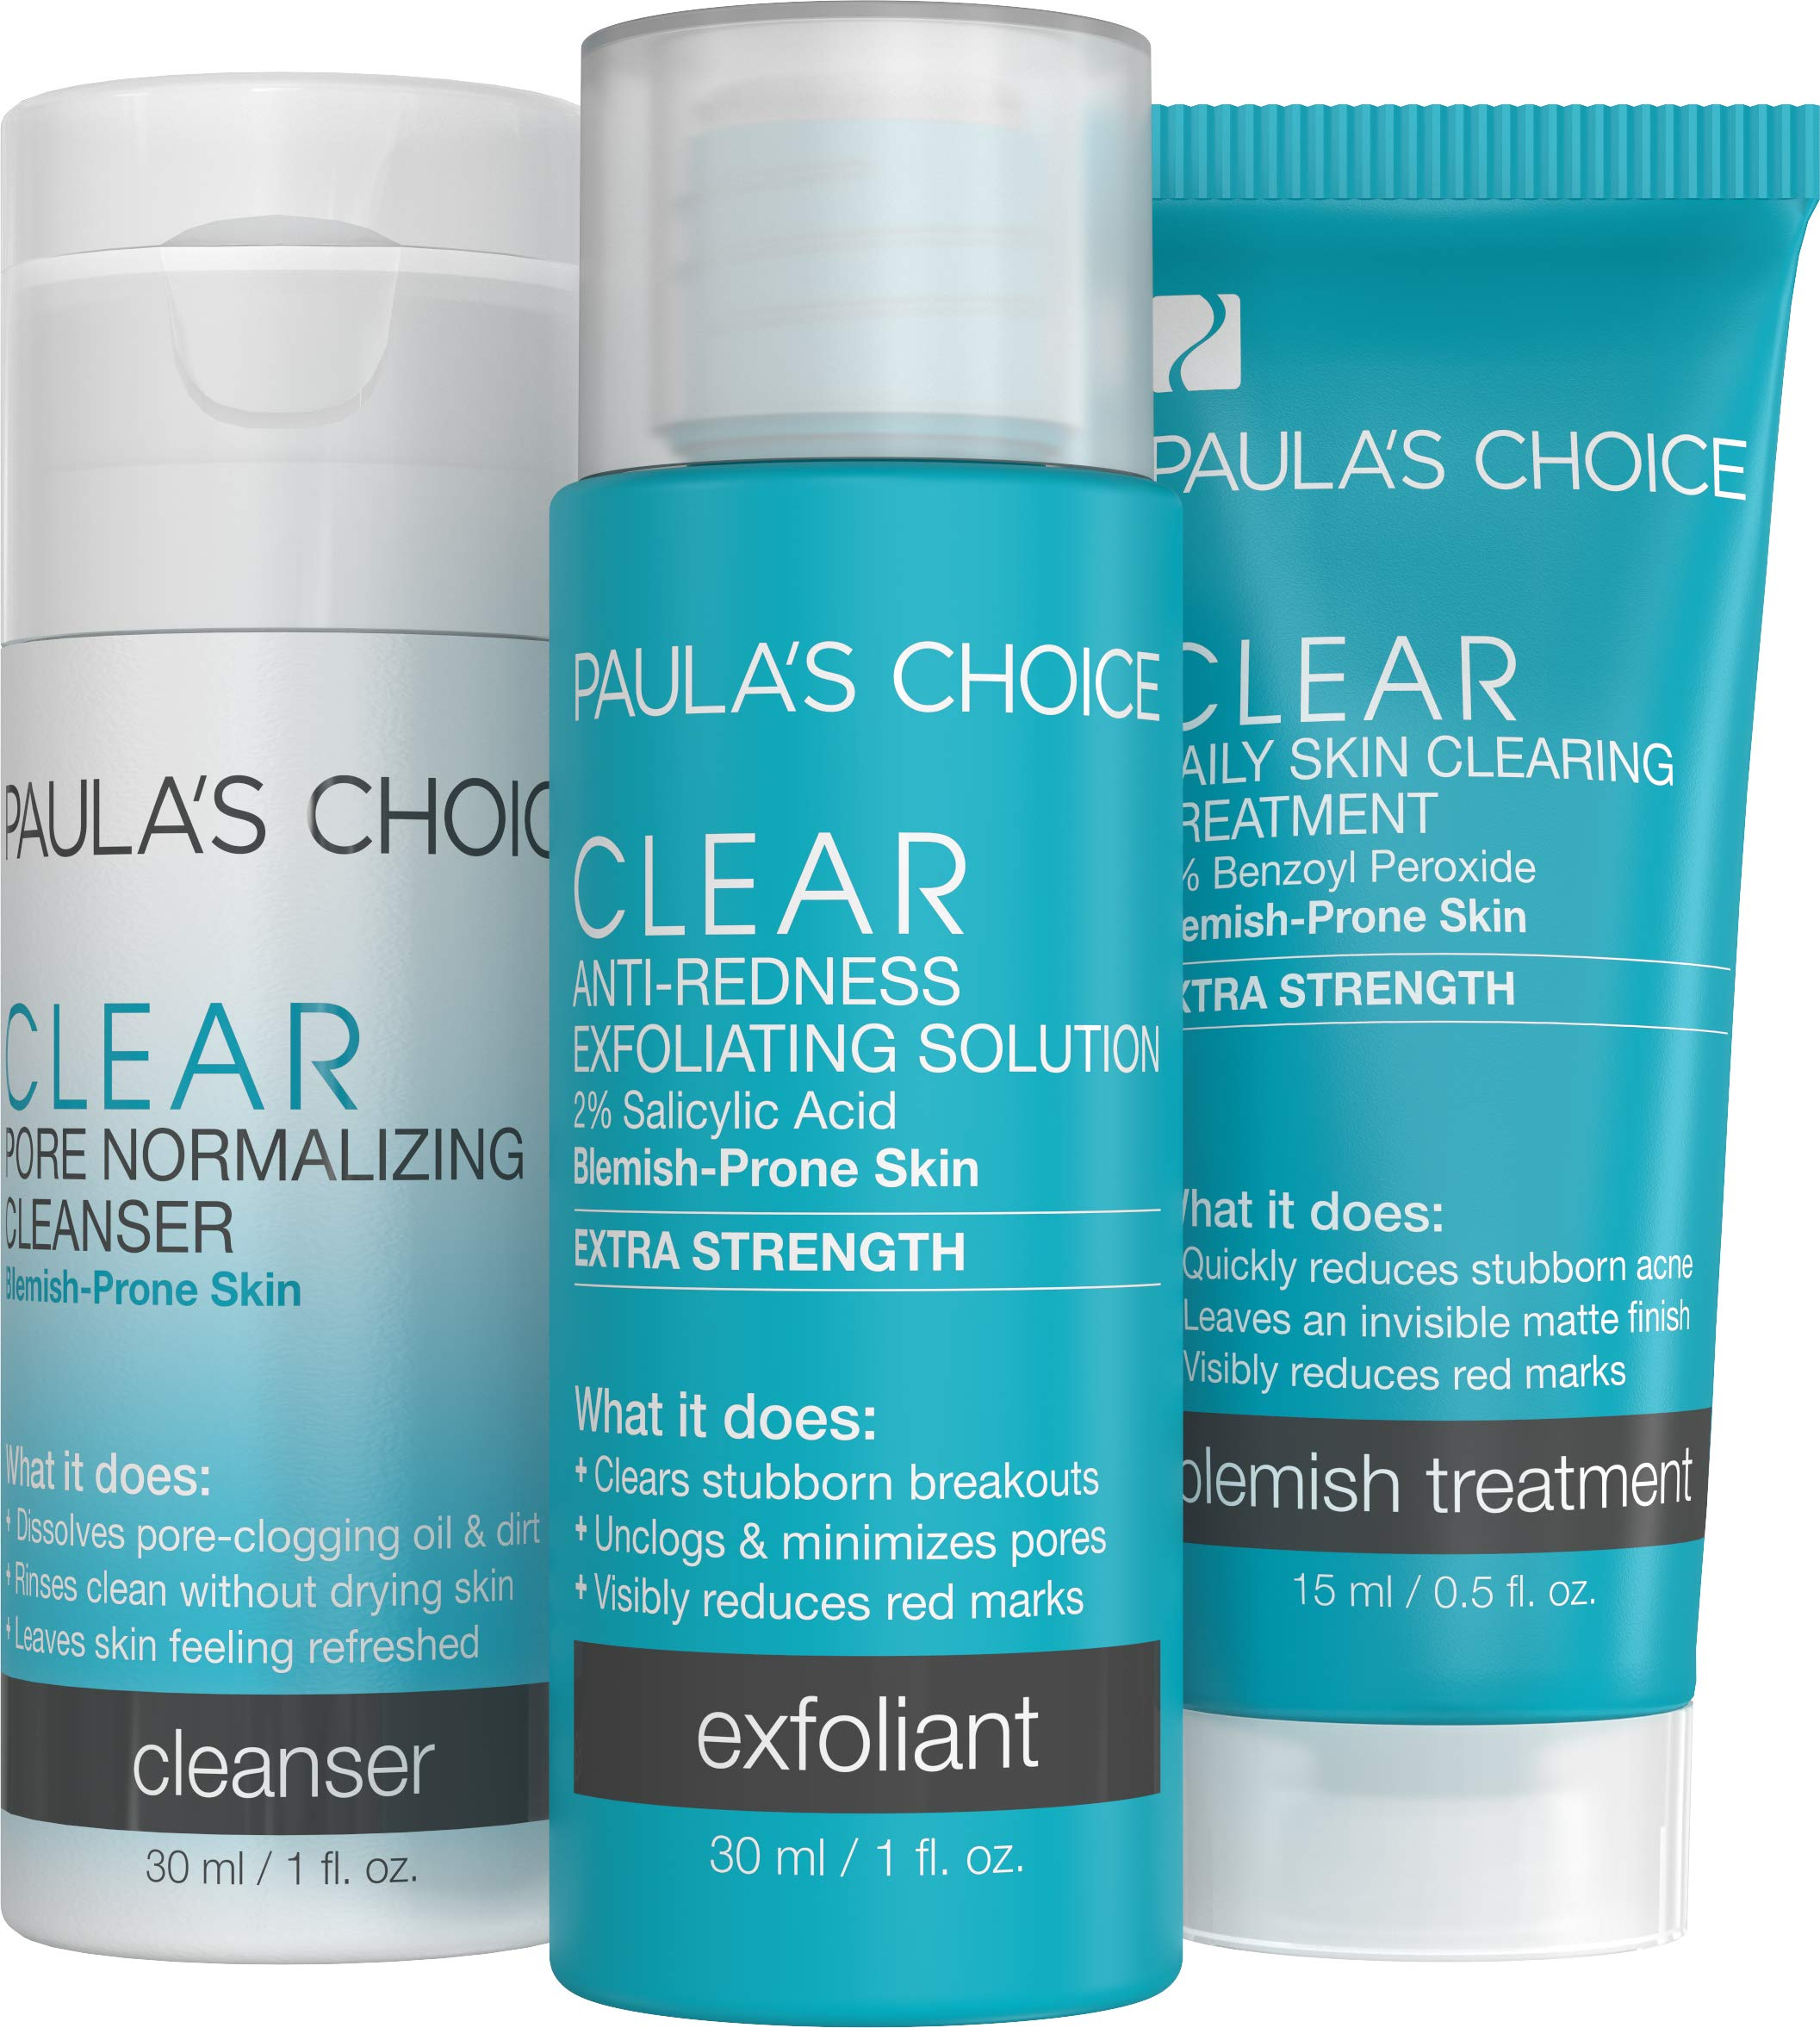 Paula's Choice CLEAR Extra Strength Acne Travel Kit, 2% Salicylic Acid & 5% Benzoyl Peroxide for Severe Acne, Redness Relief by PAULA'S CHOICE